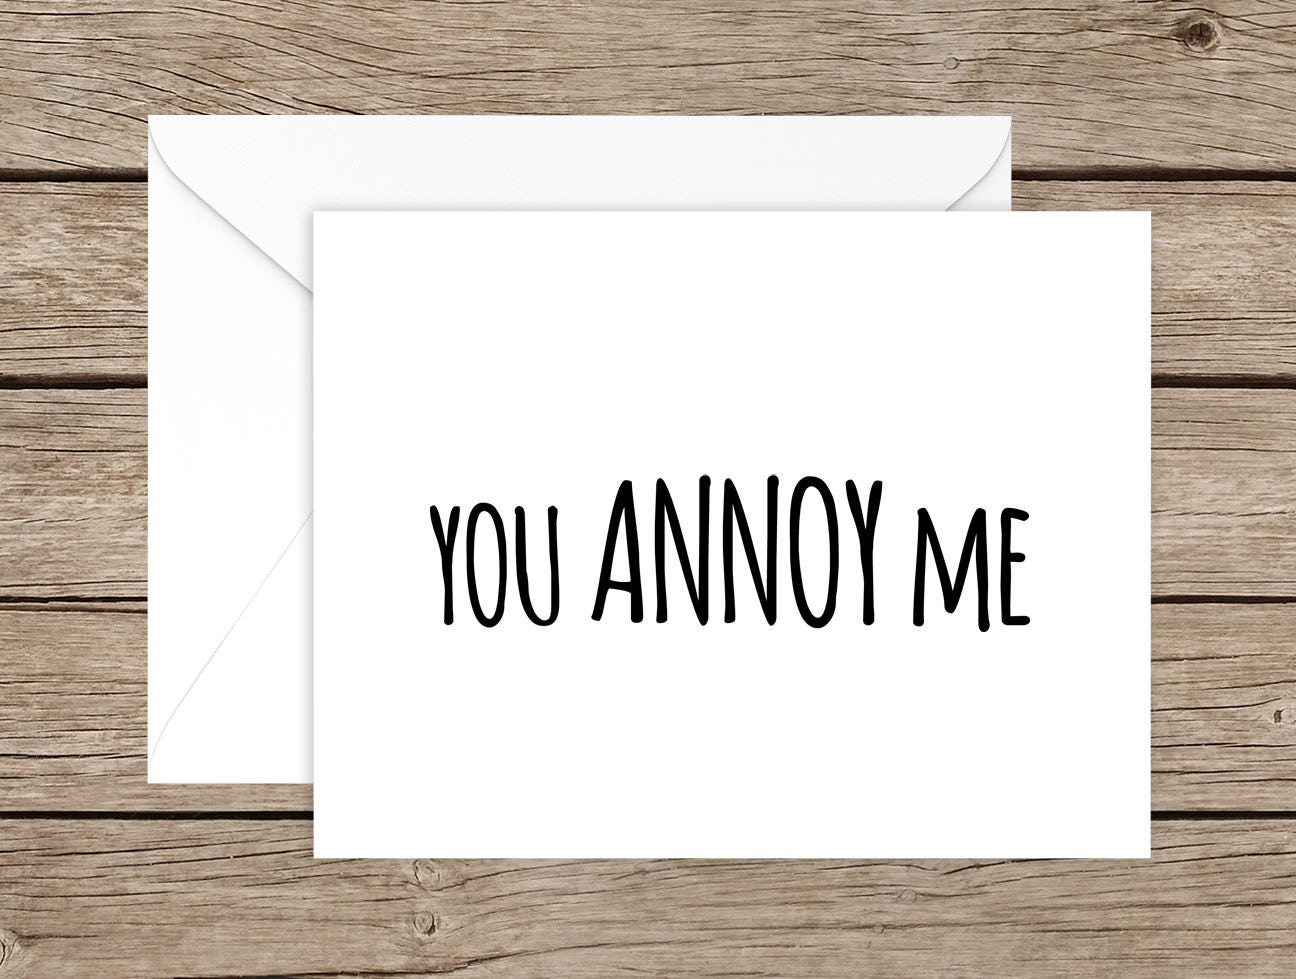 Naughty Valentines Day Card Naughty Anniversary Card For-9864